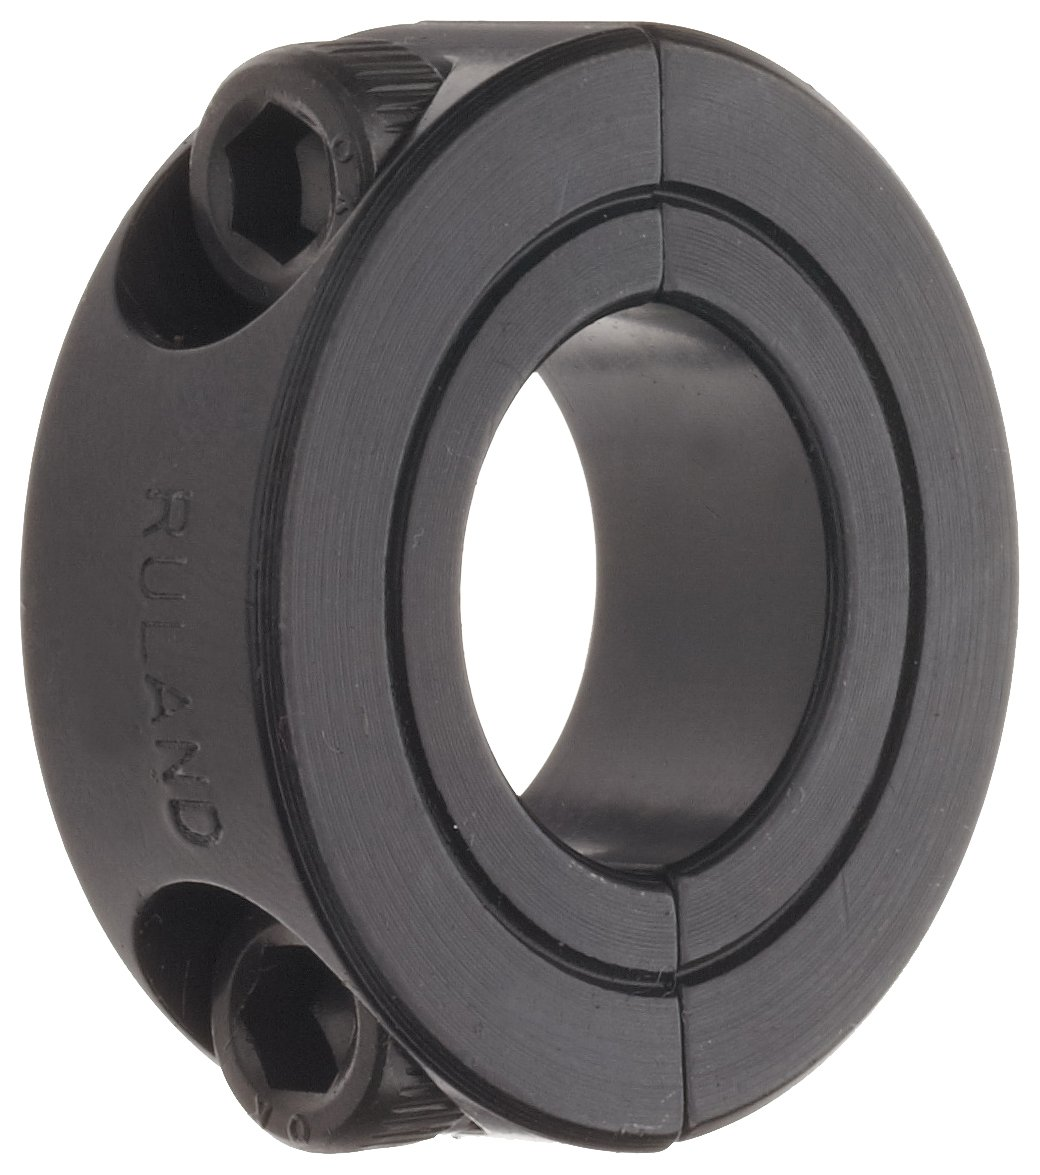 Black Oxide Steel Ruland SP-20-F Two-Piece Clamping Shaft Collar Pack of 2 2 1//16 OD 1//2 Width 1.250 Bore